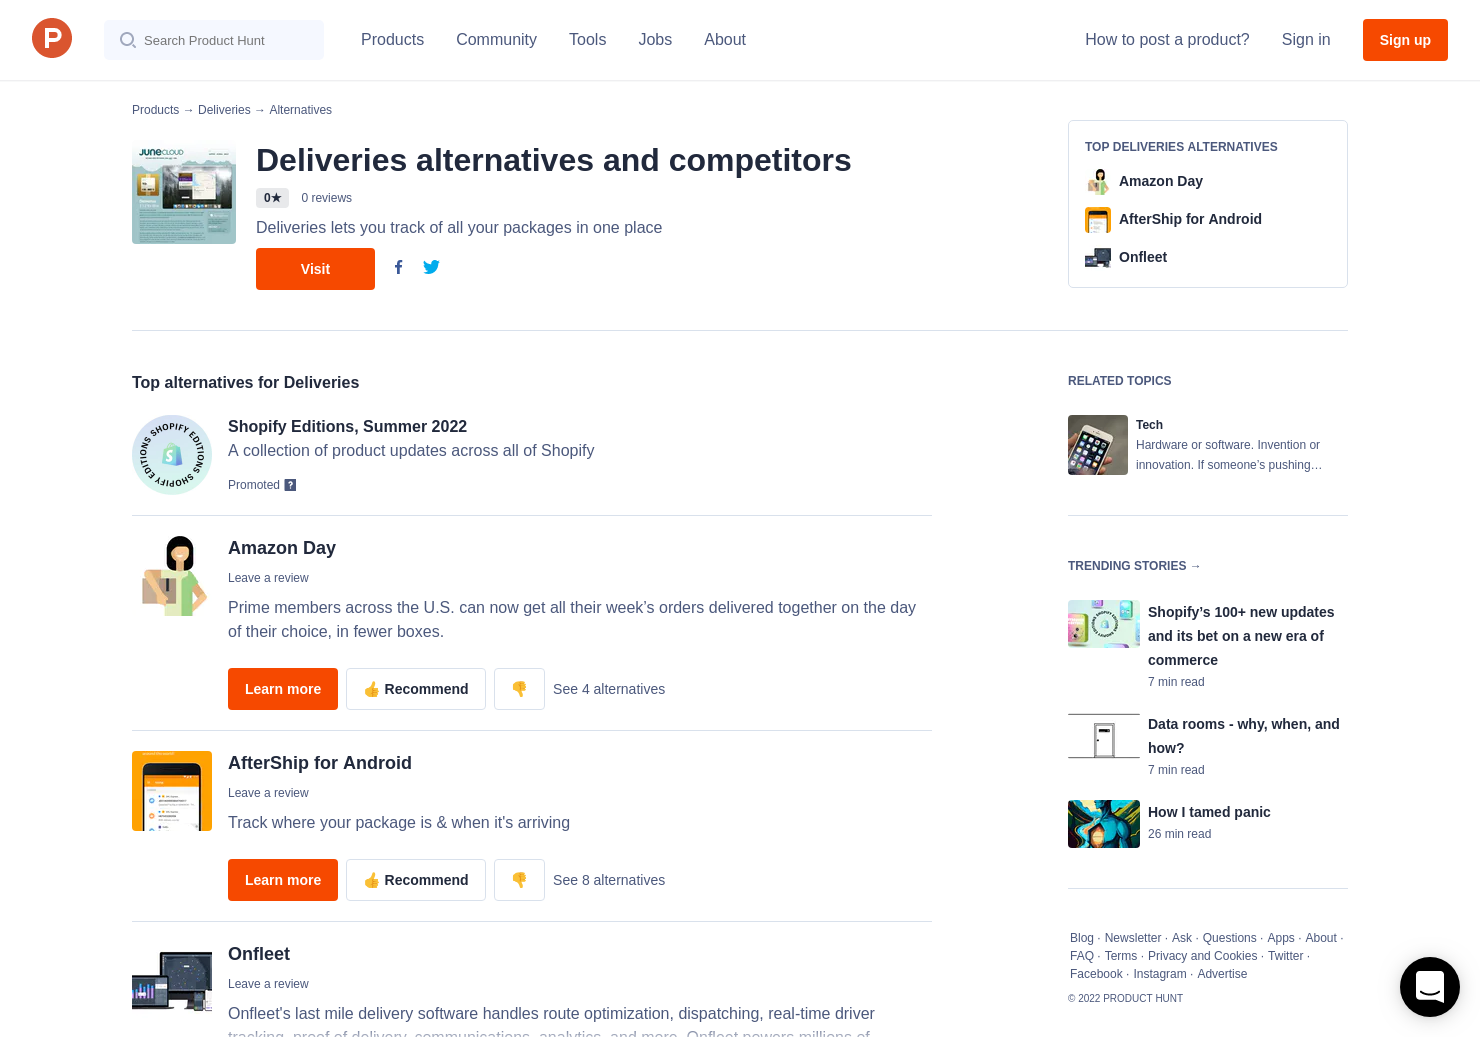 10 Alternatives to Deliveries | Product Hunt